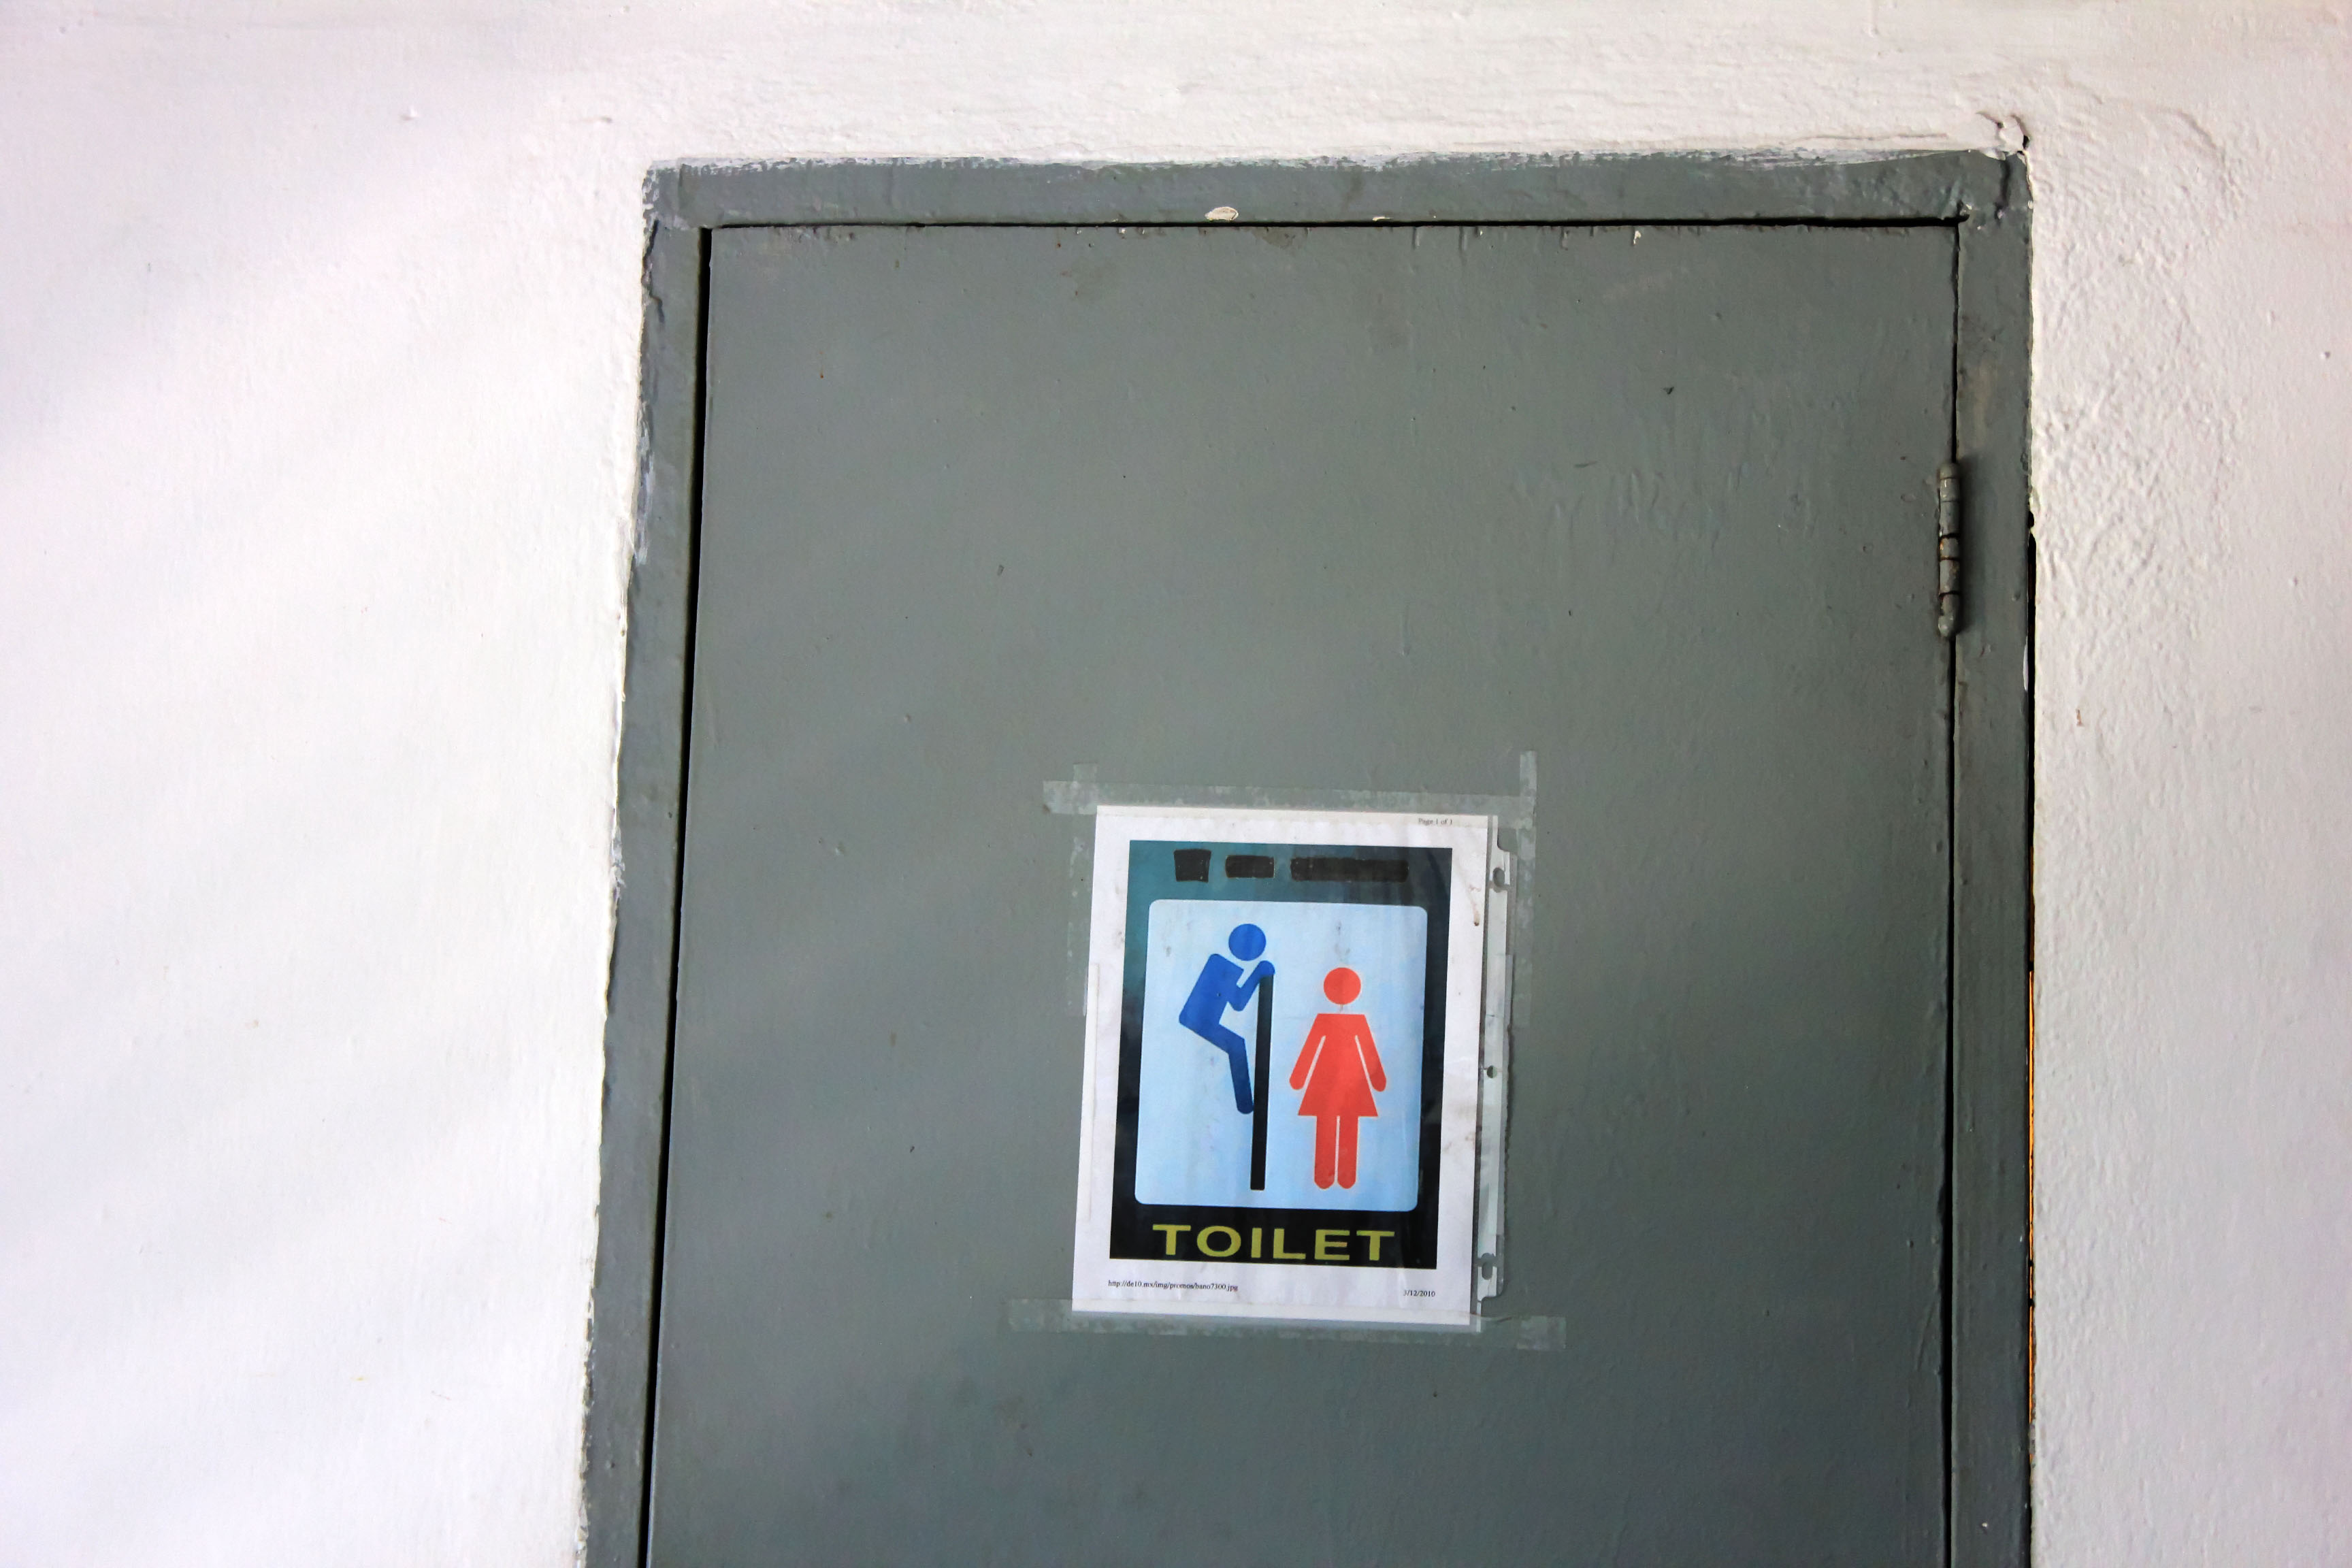 Bathroom Signs History file:gfp-bathroom-sign - wikimedia commons